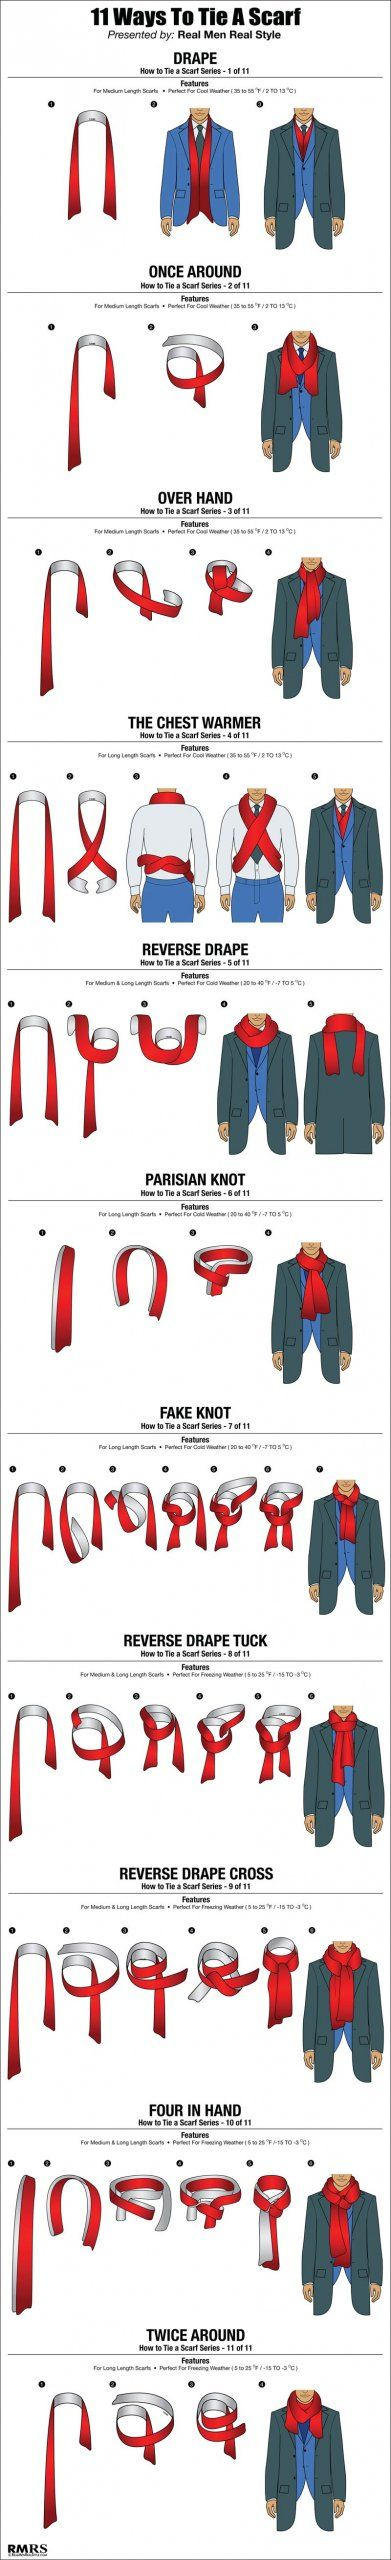 11 Ways To Tie A Scarf Poster 800